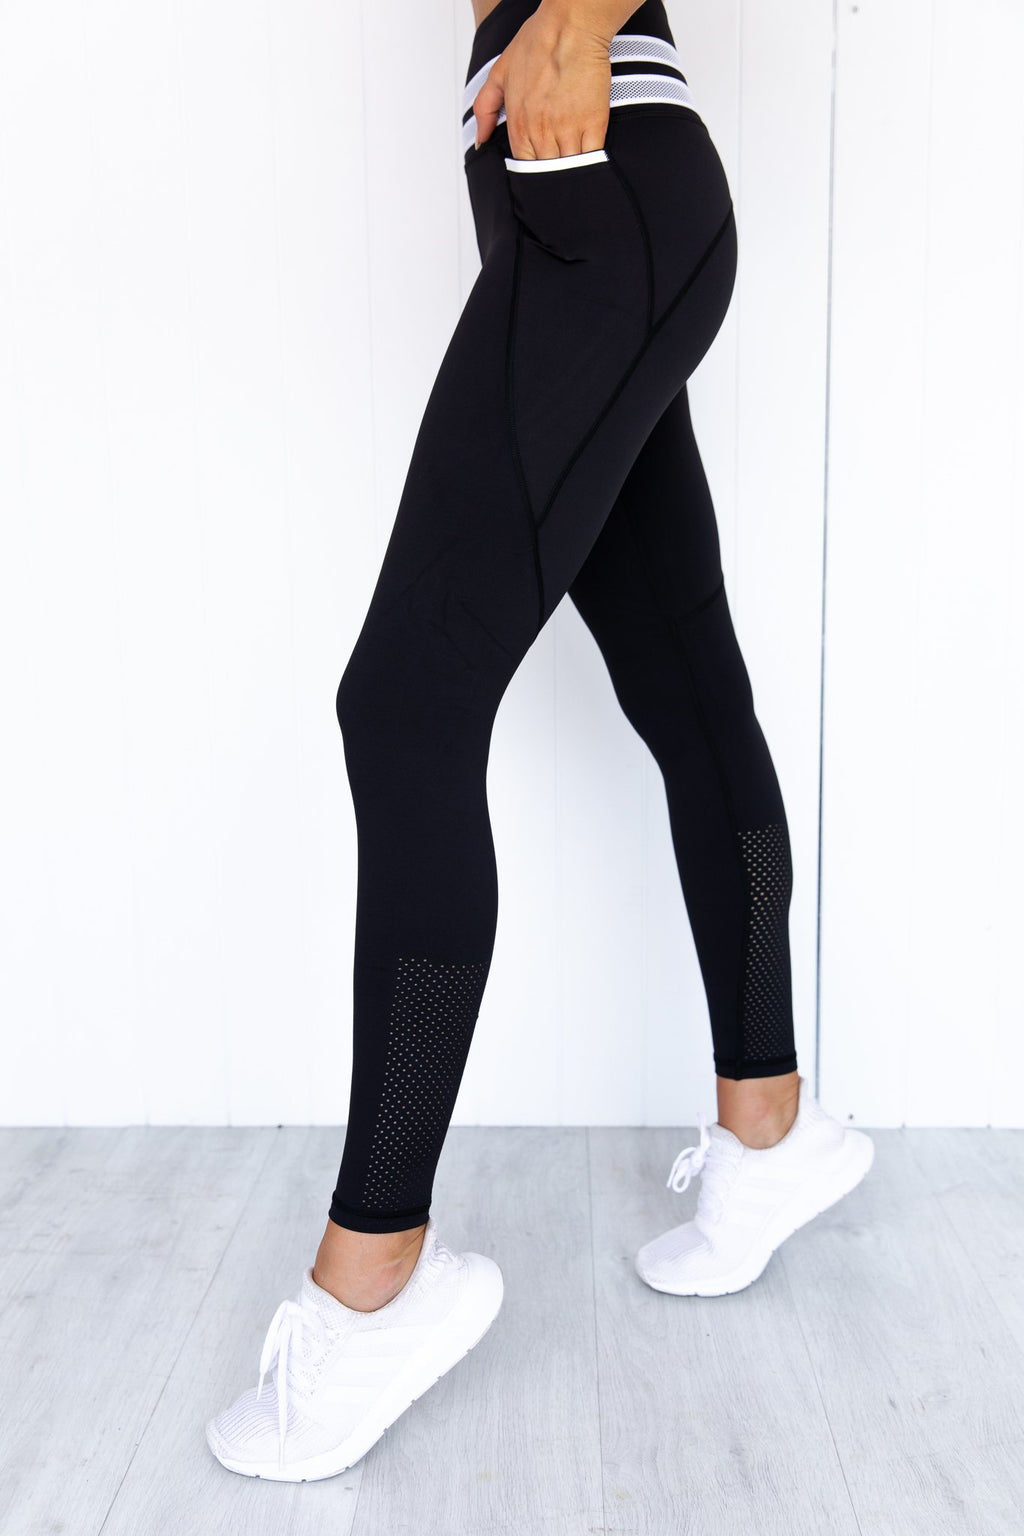 Riviera Legging - Black